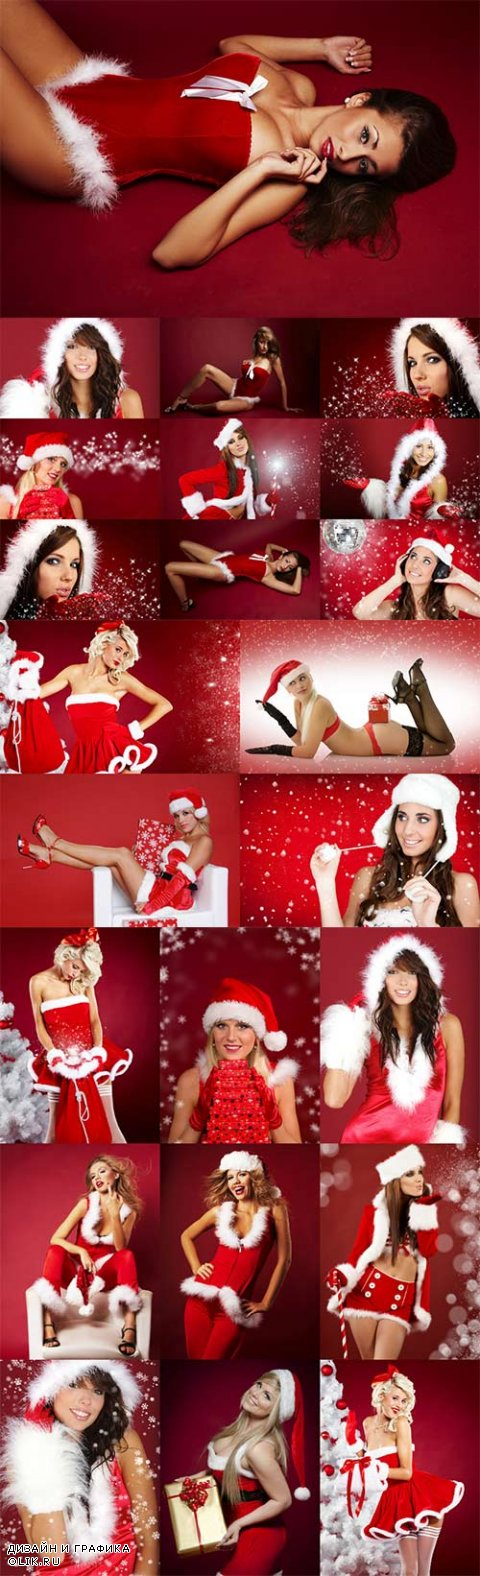 Sexy girls Santa on a red background